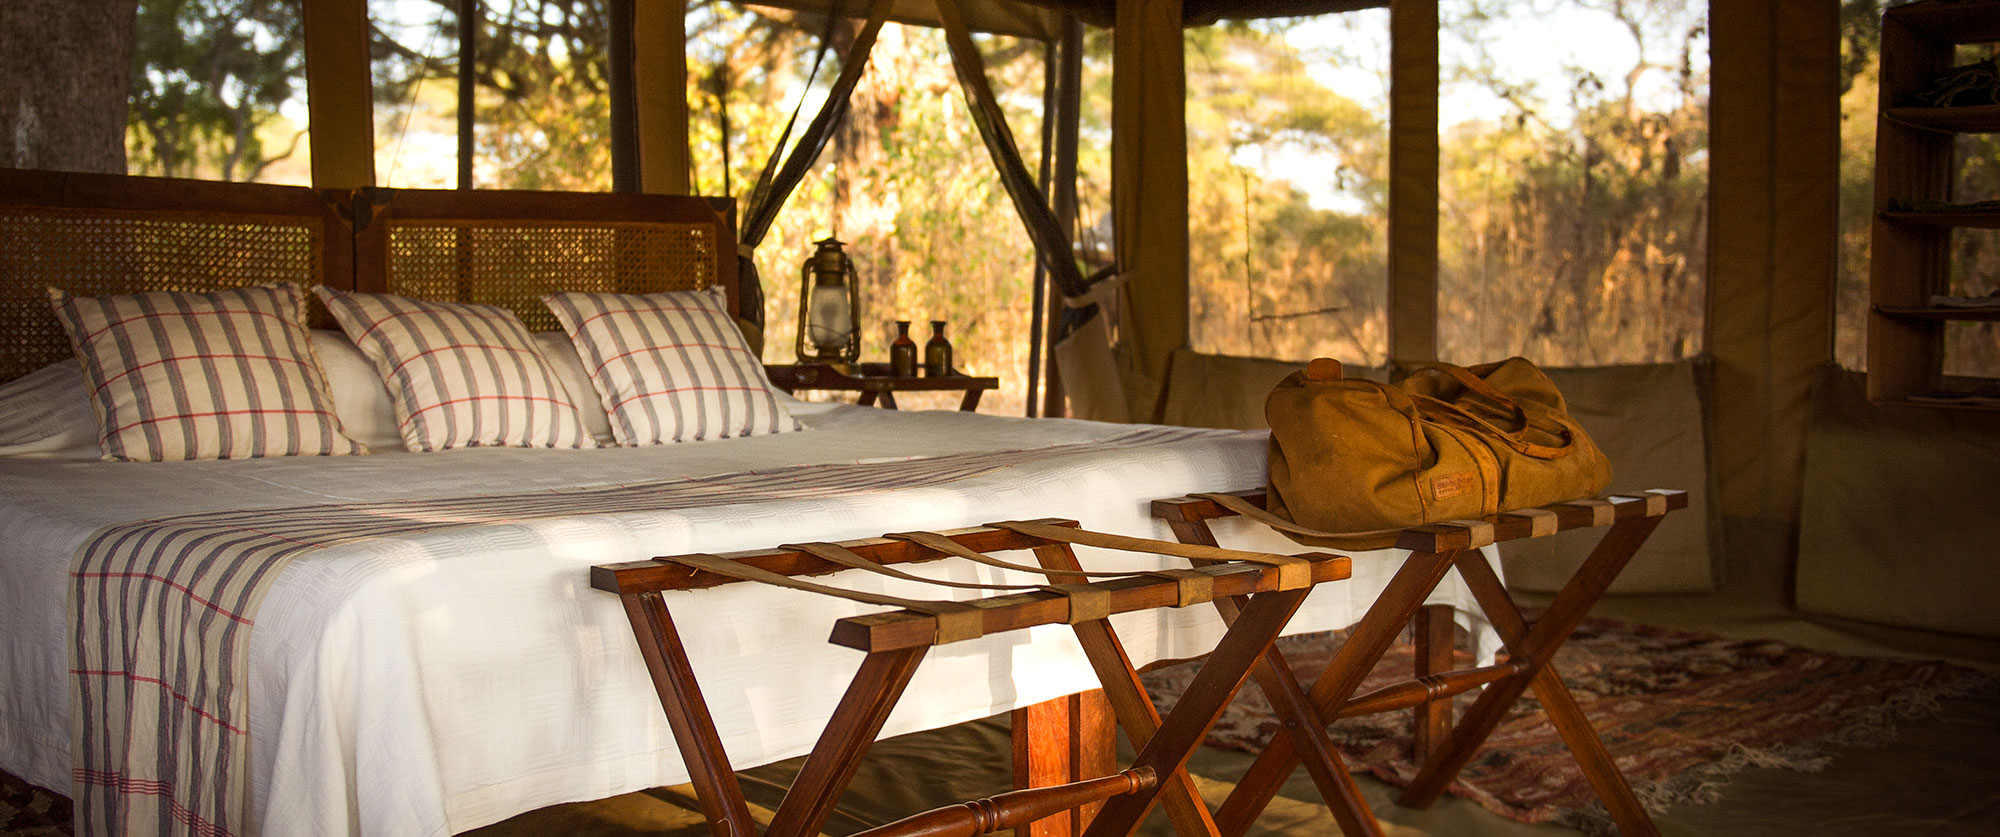 Tanzania Safari Getaway - Chada Katavi Luxury Bush Camp in Tanzania - Deluxe Tented Camp